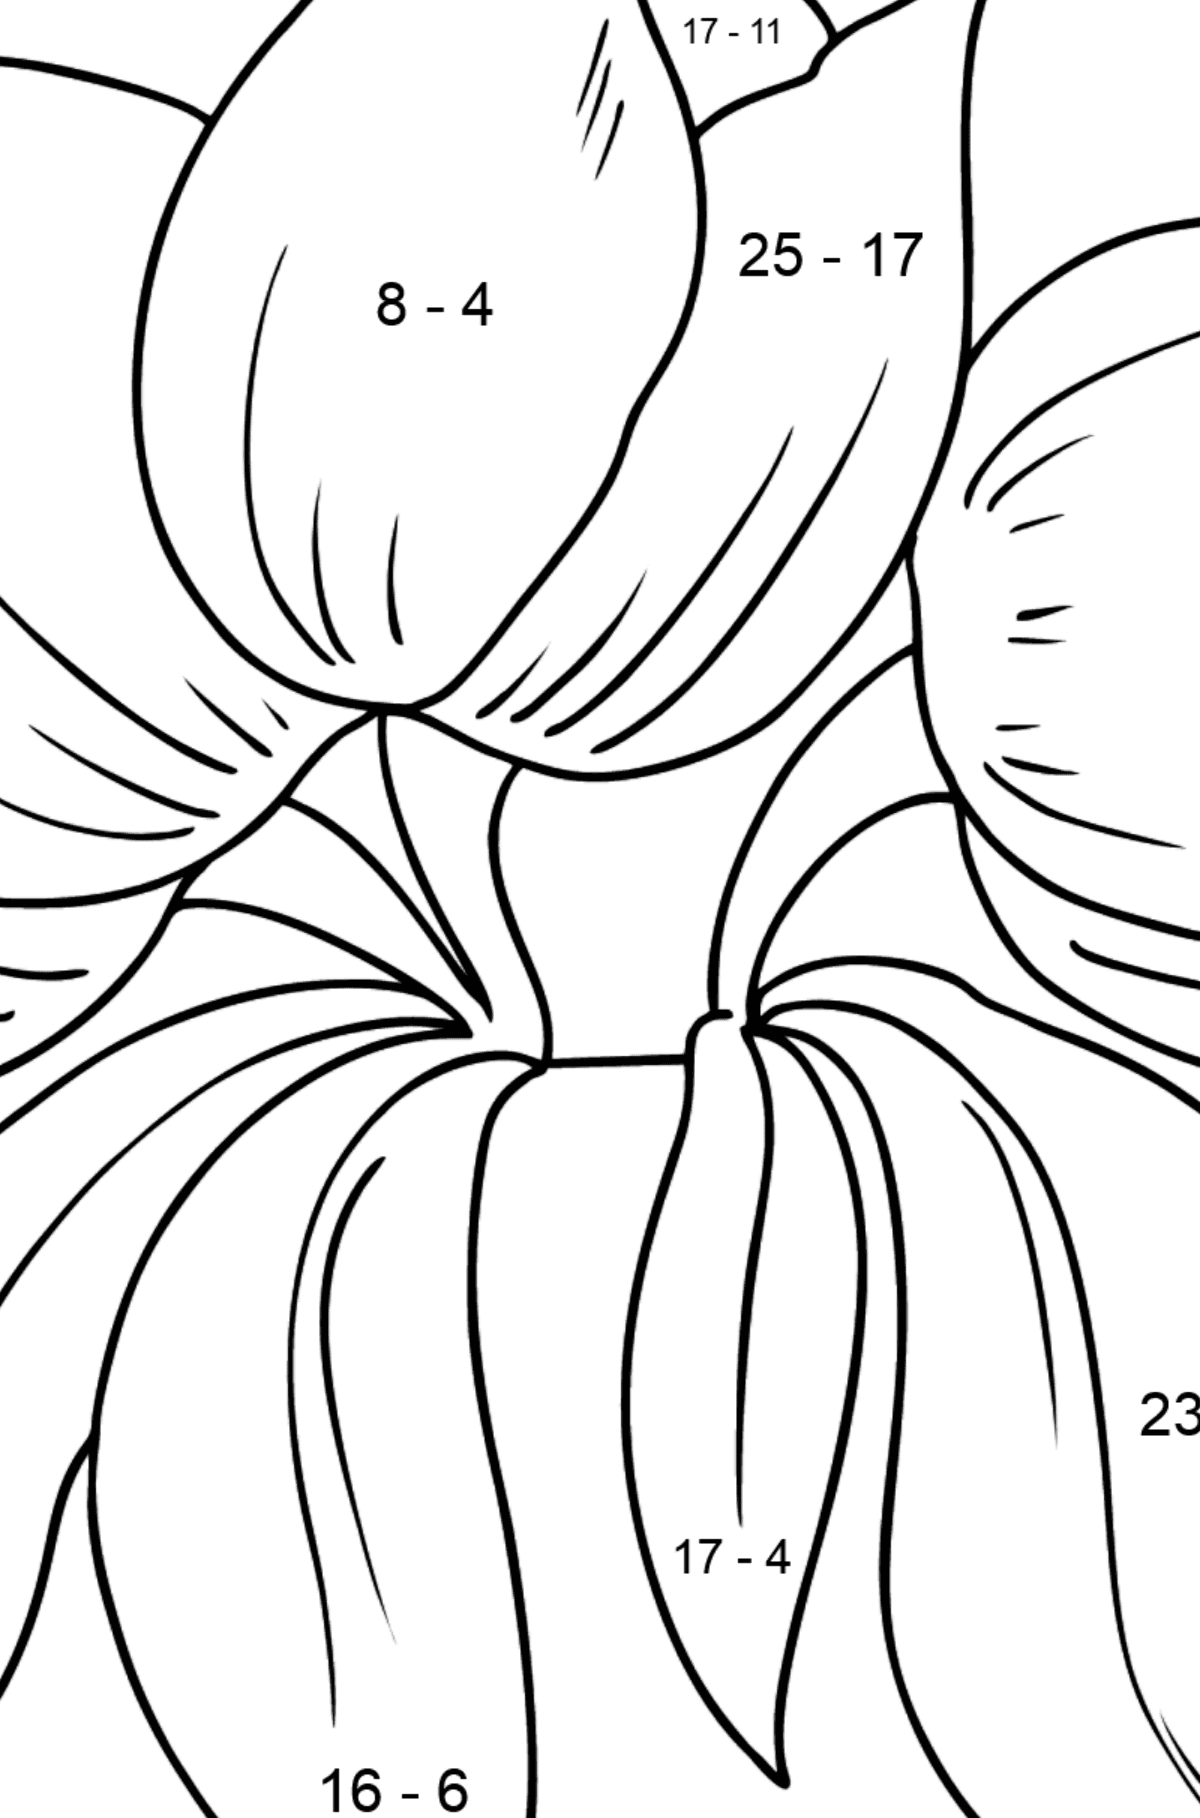 Flower Coloring Page - Tulips - Math Coloring - Subtraction for Kids